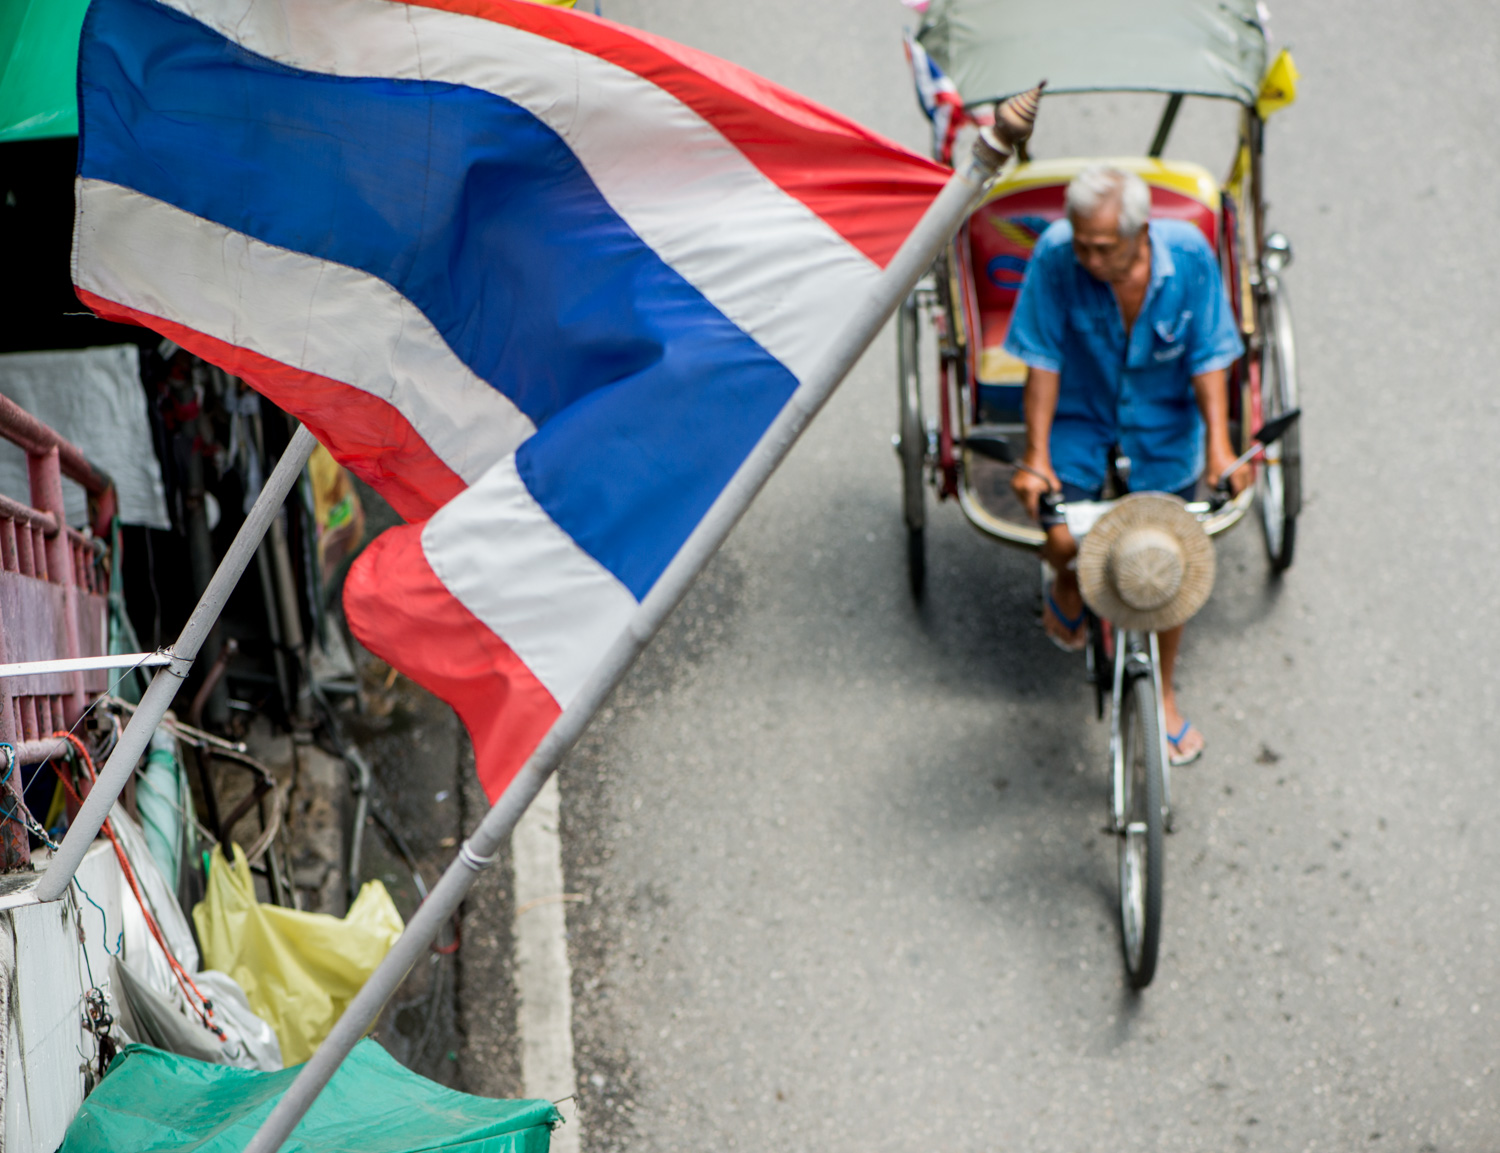 Market scene with Thai flag and samlor. Photo by Kevin Landwer-Johan (copyright) 7 Tips for Avoiding a Distracting Background in Street Photography